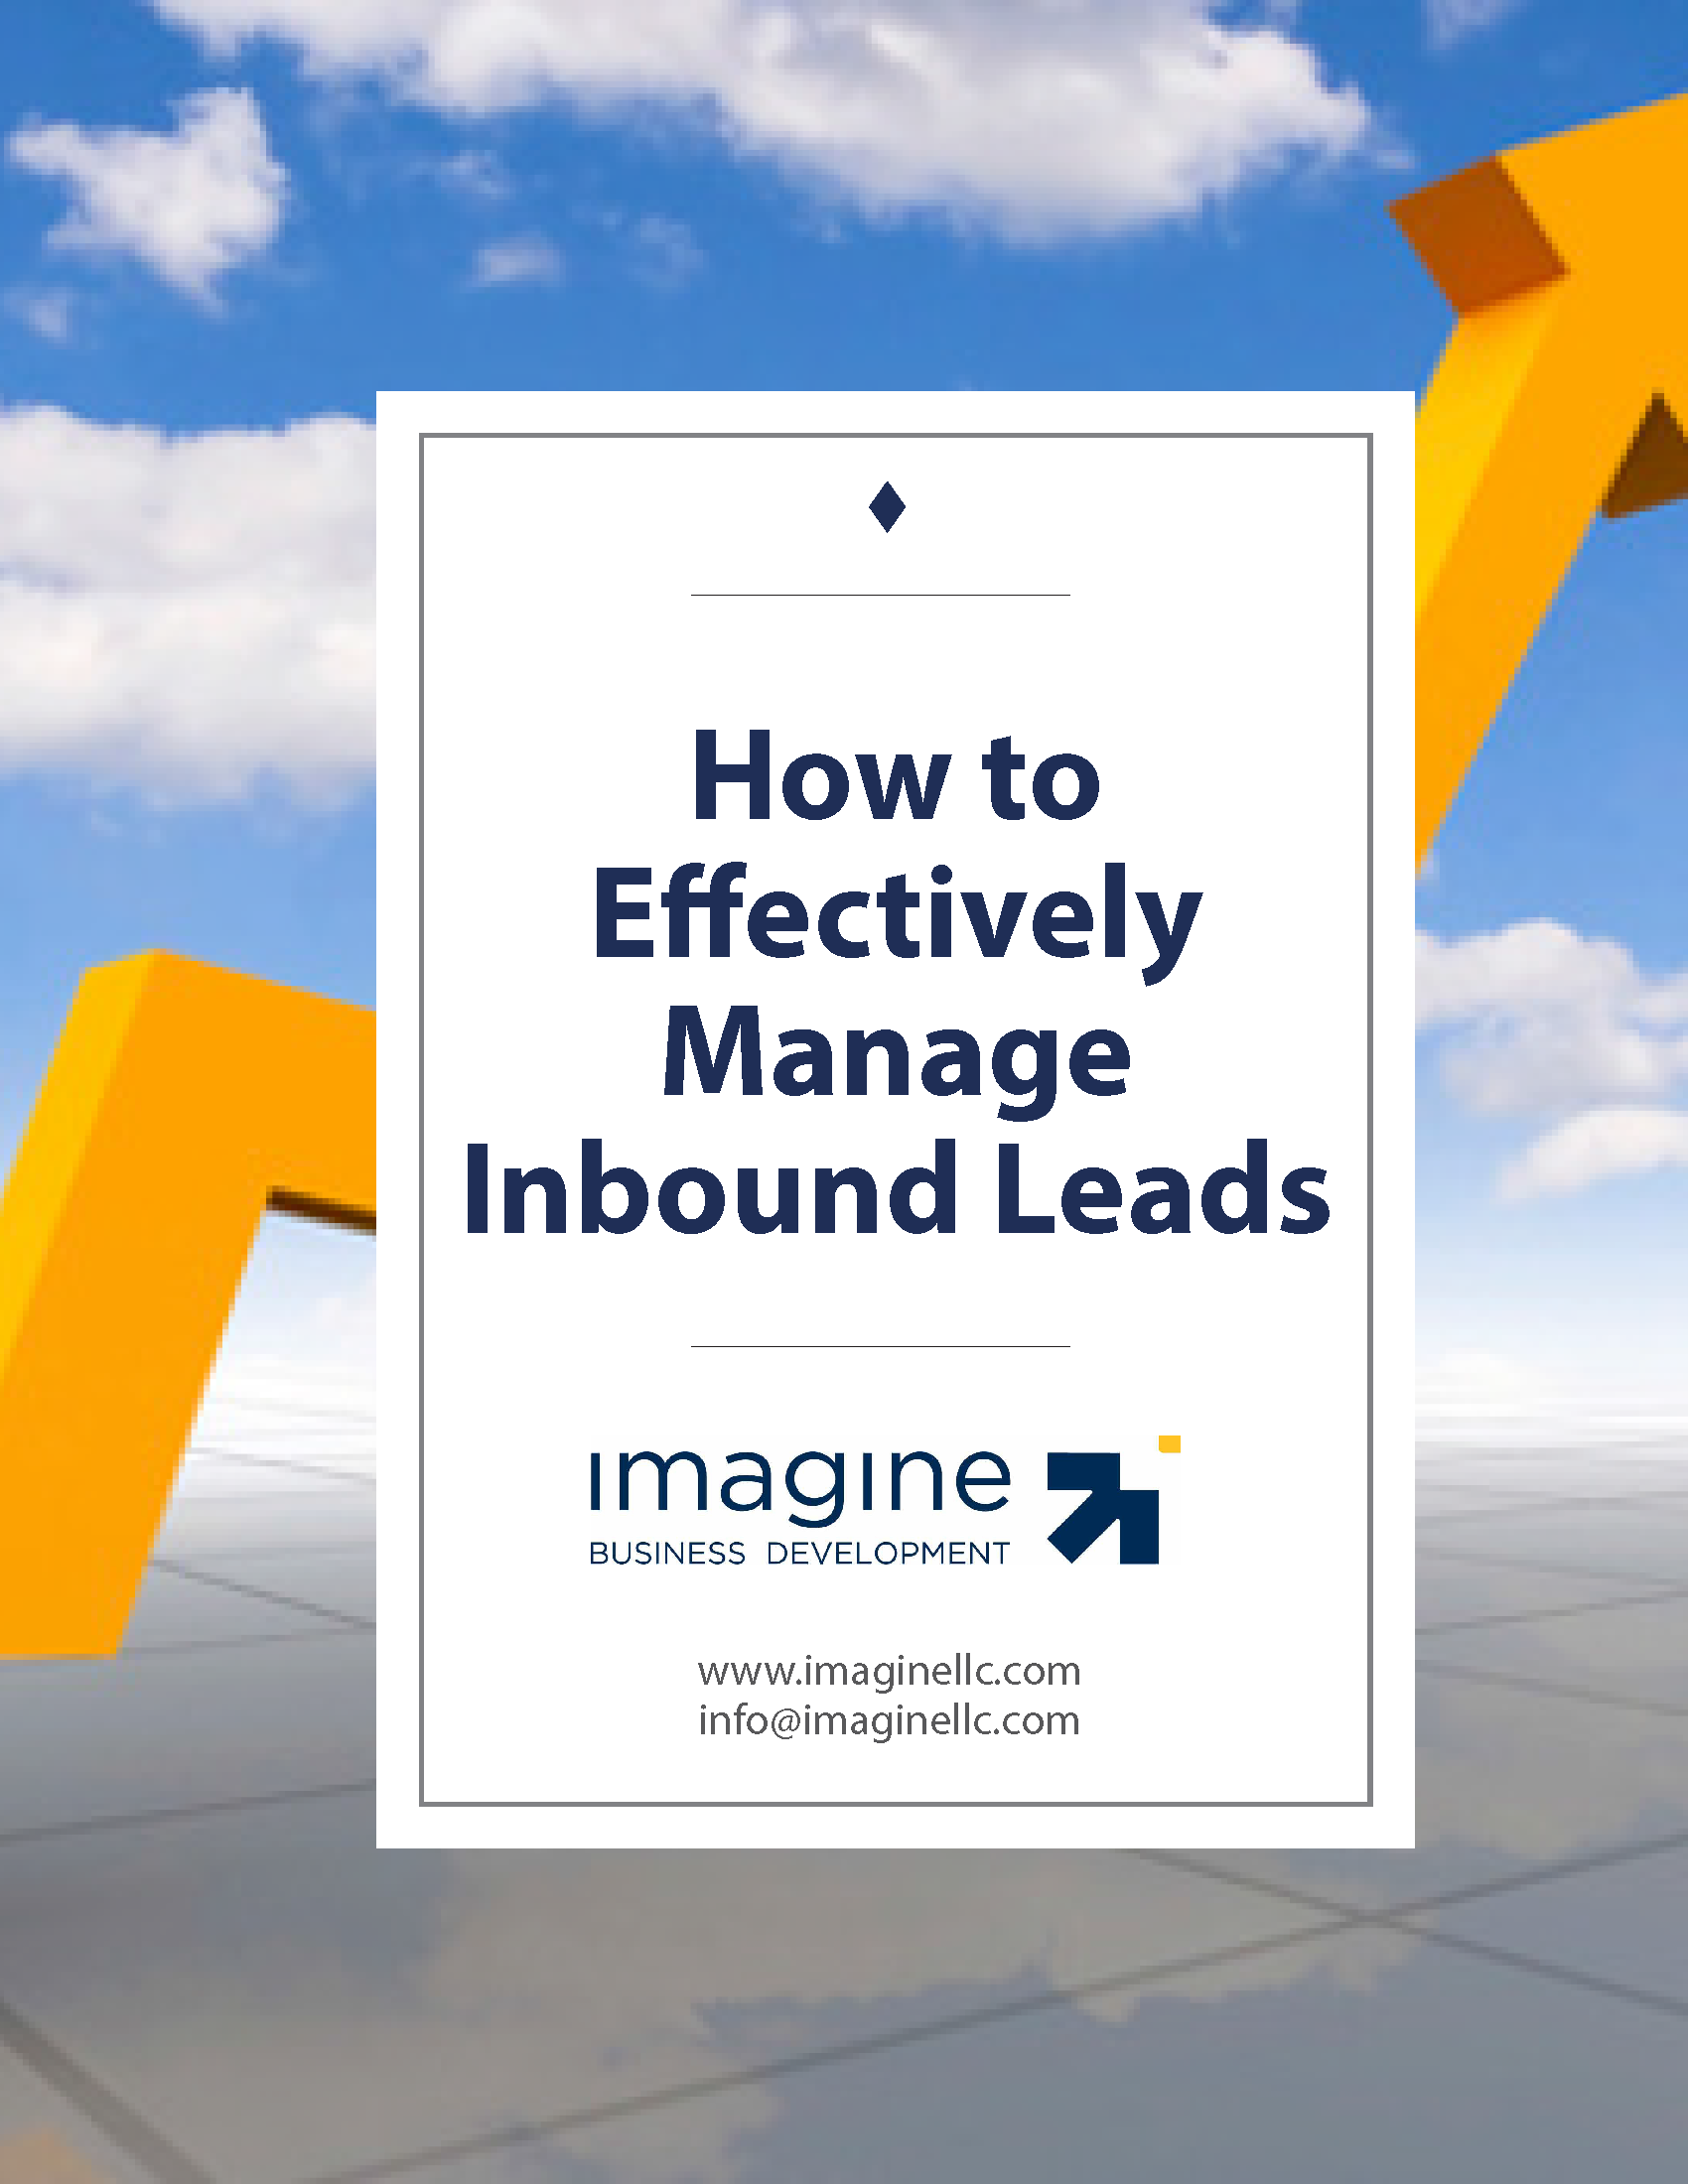 How-to-Effectively-Manage-Inbound-Leads-1